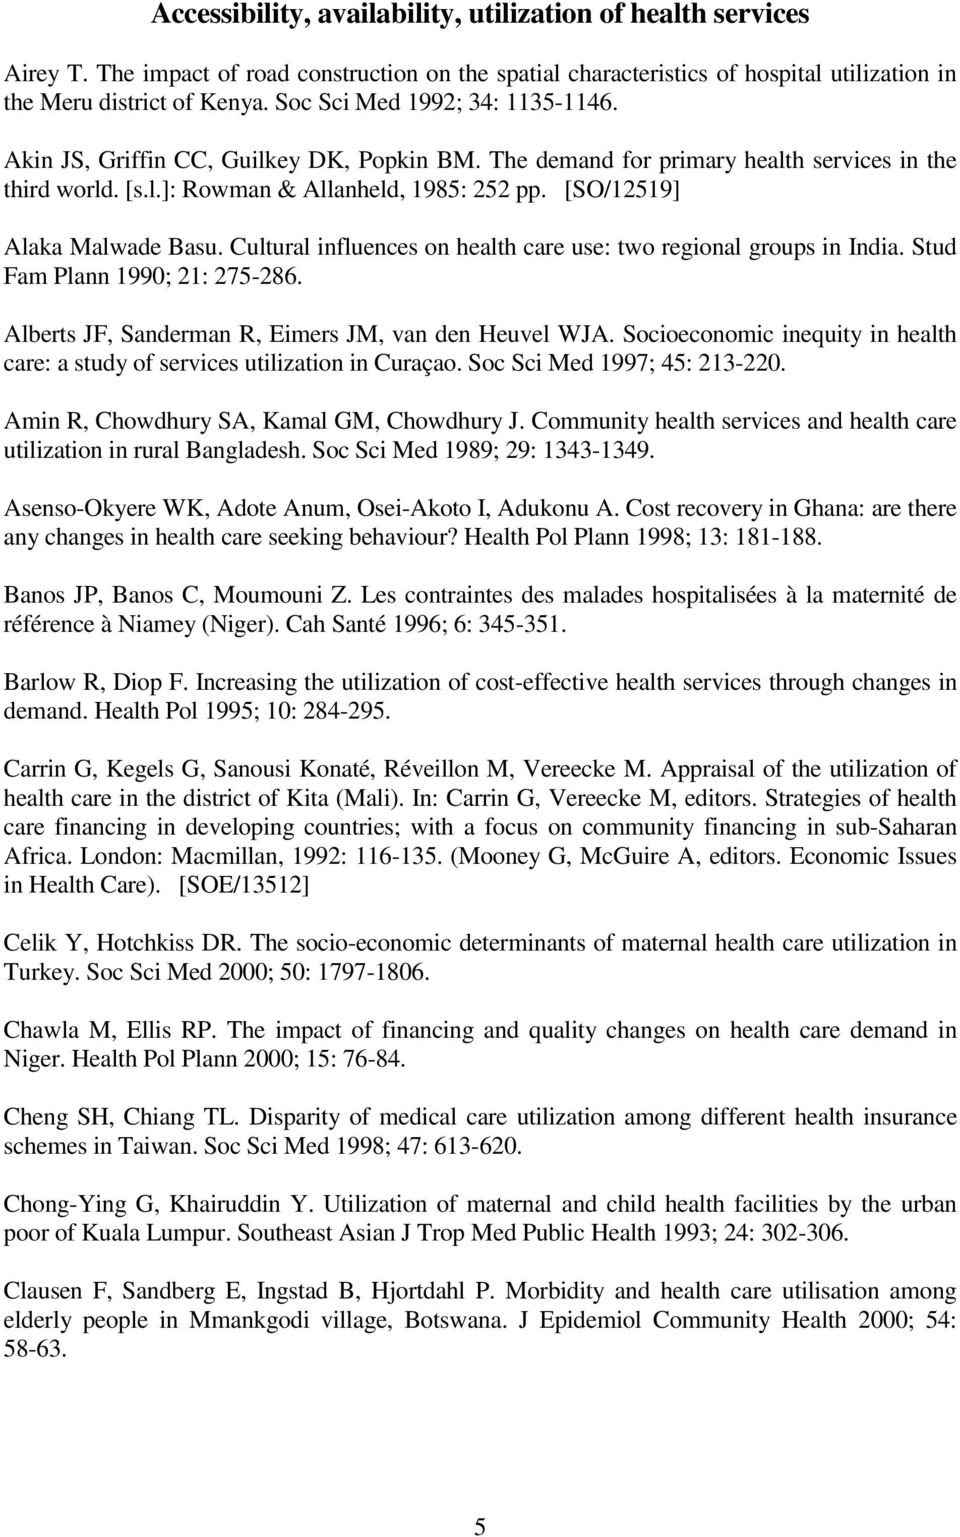 [SO/12519] Alaka Malwade Basu. Cultural influences on health care use: two regional groups in India. Stud Fam Plann 1990; 21: 275-286. Alberts JF, Sanderman R, Eimers JM, van den Heuvel WJA.